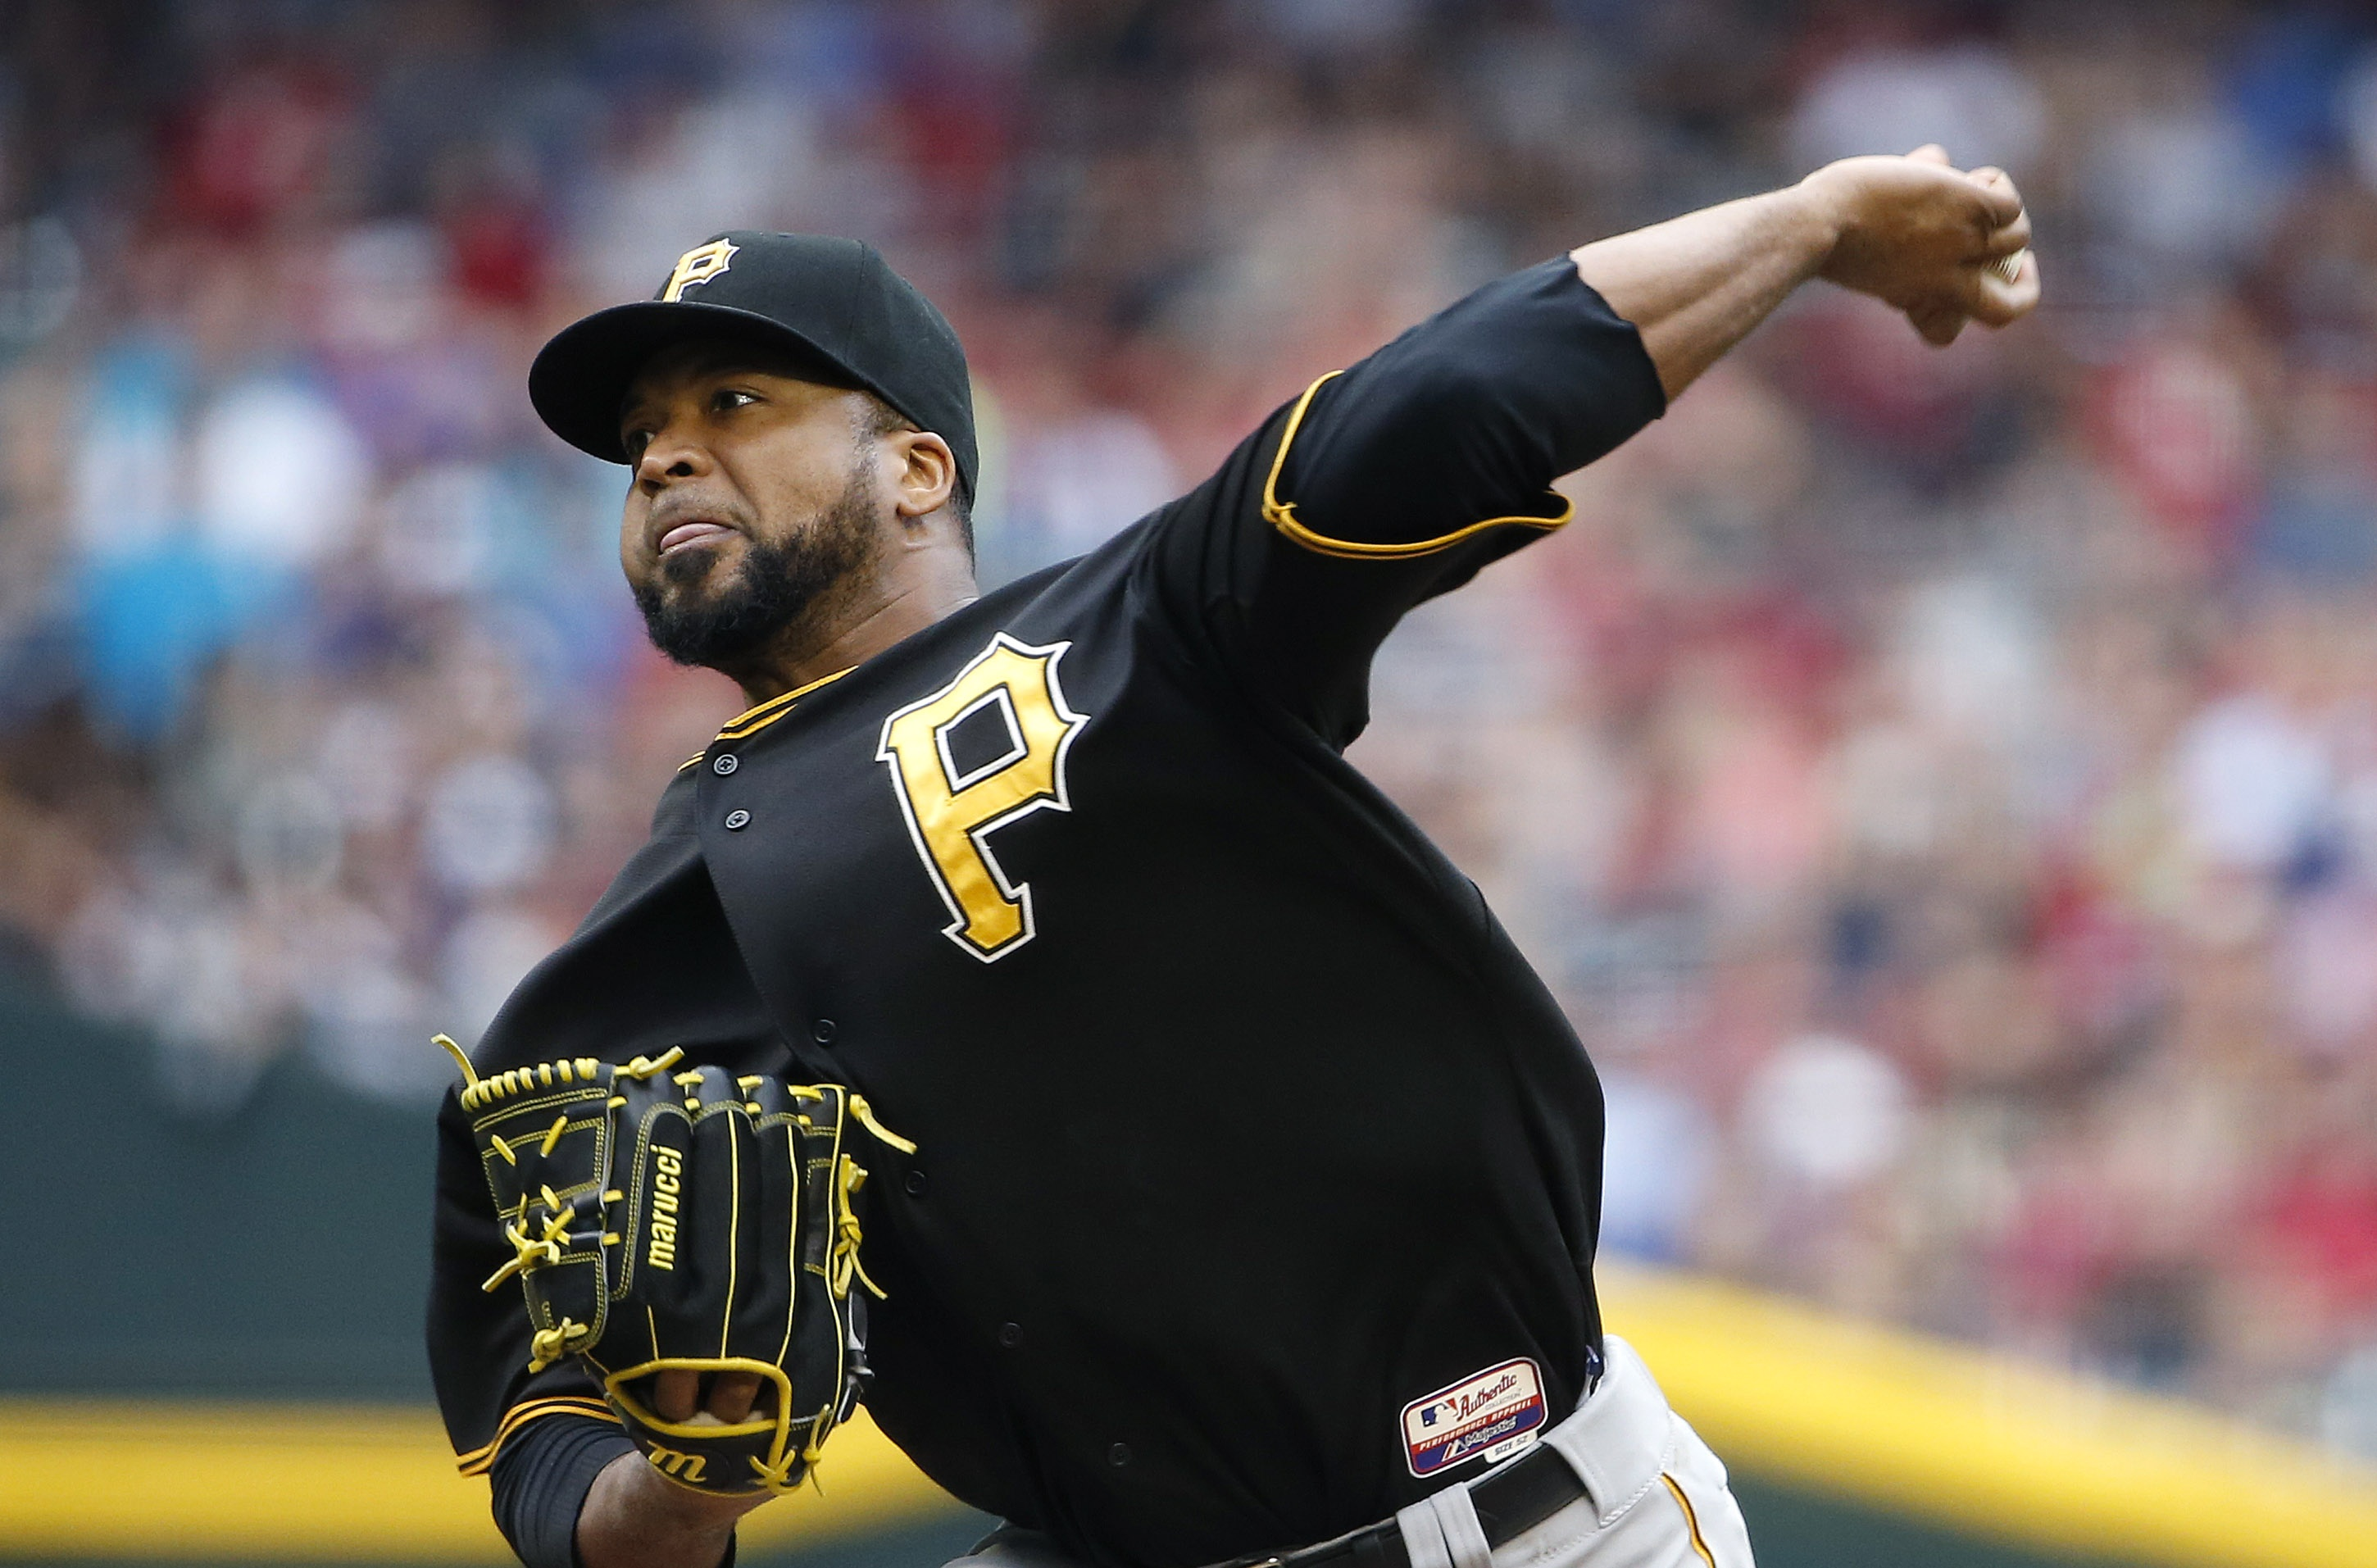 Pittsburgh Pirates' Francisco Liriano throws a pitch against the Arizona Diamondbacks during the first inning of a baseball game Sunday, April 26, 2015, in Phoenix. (AP Photo/Ross D. Franklin)